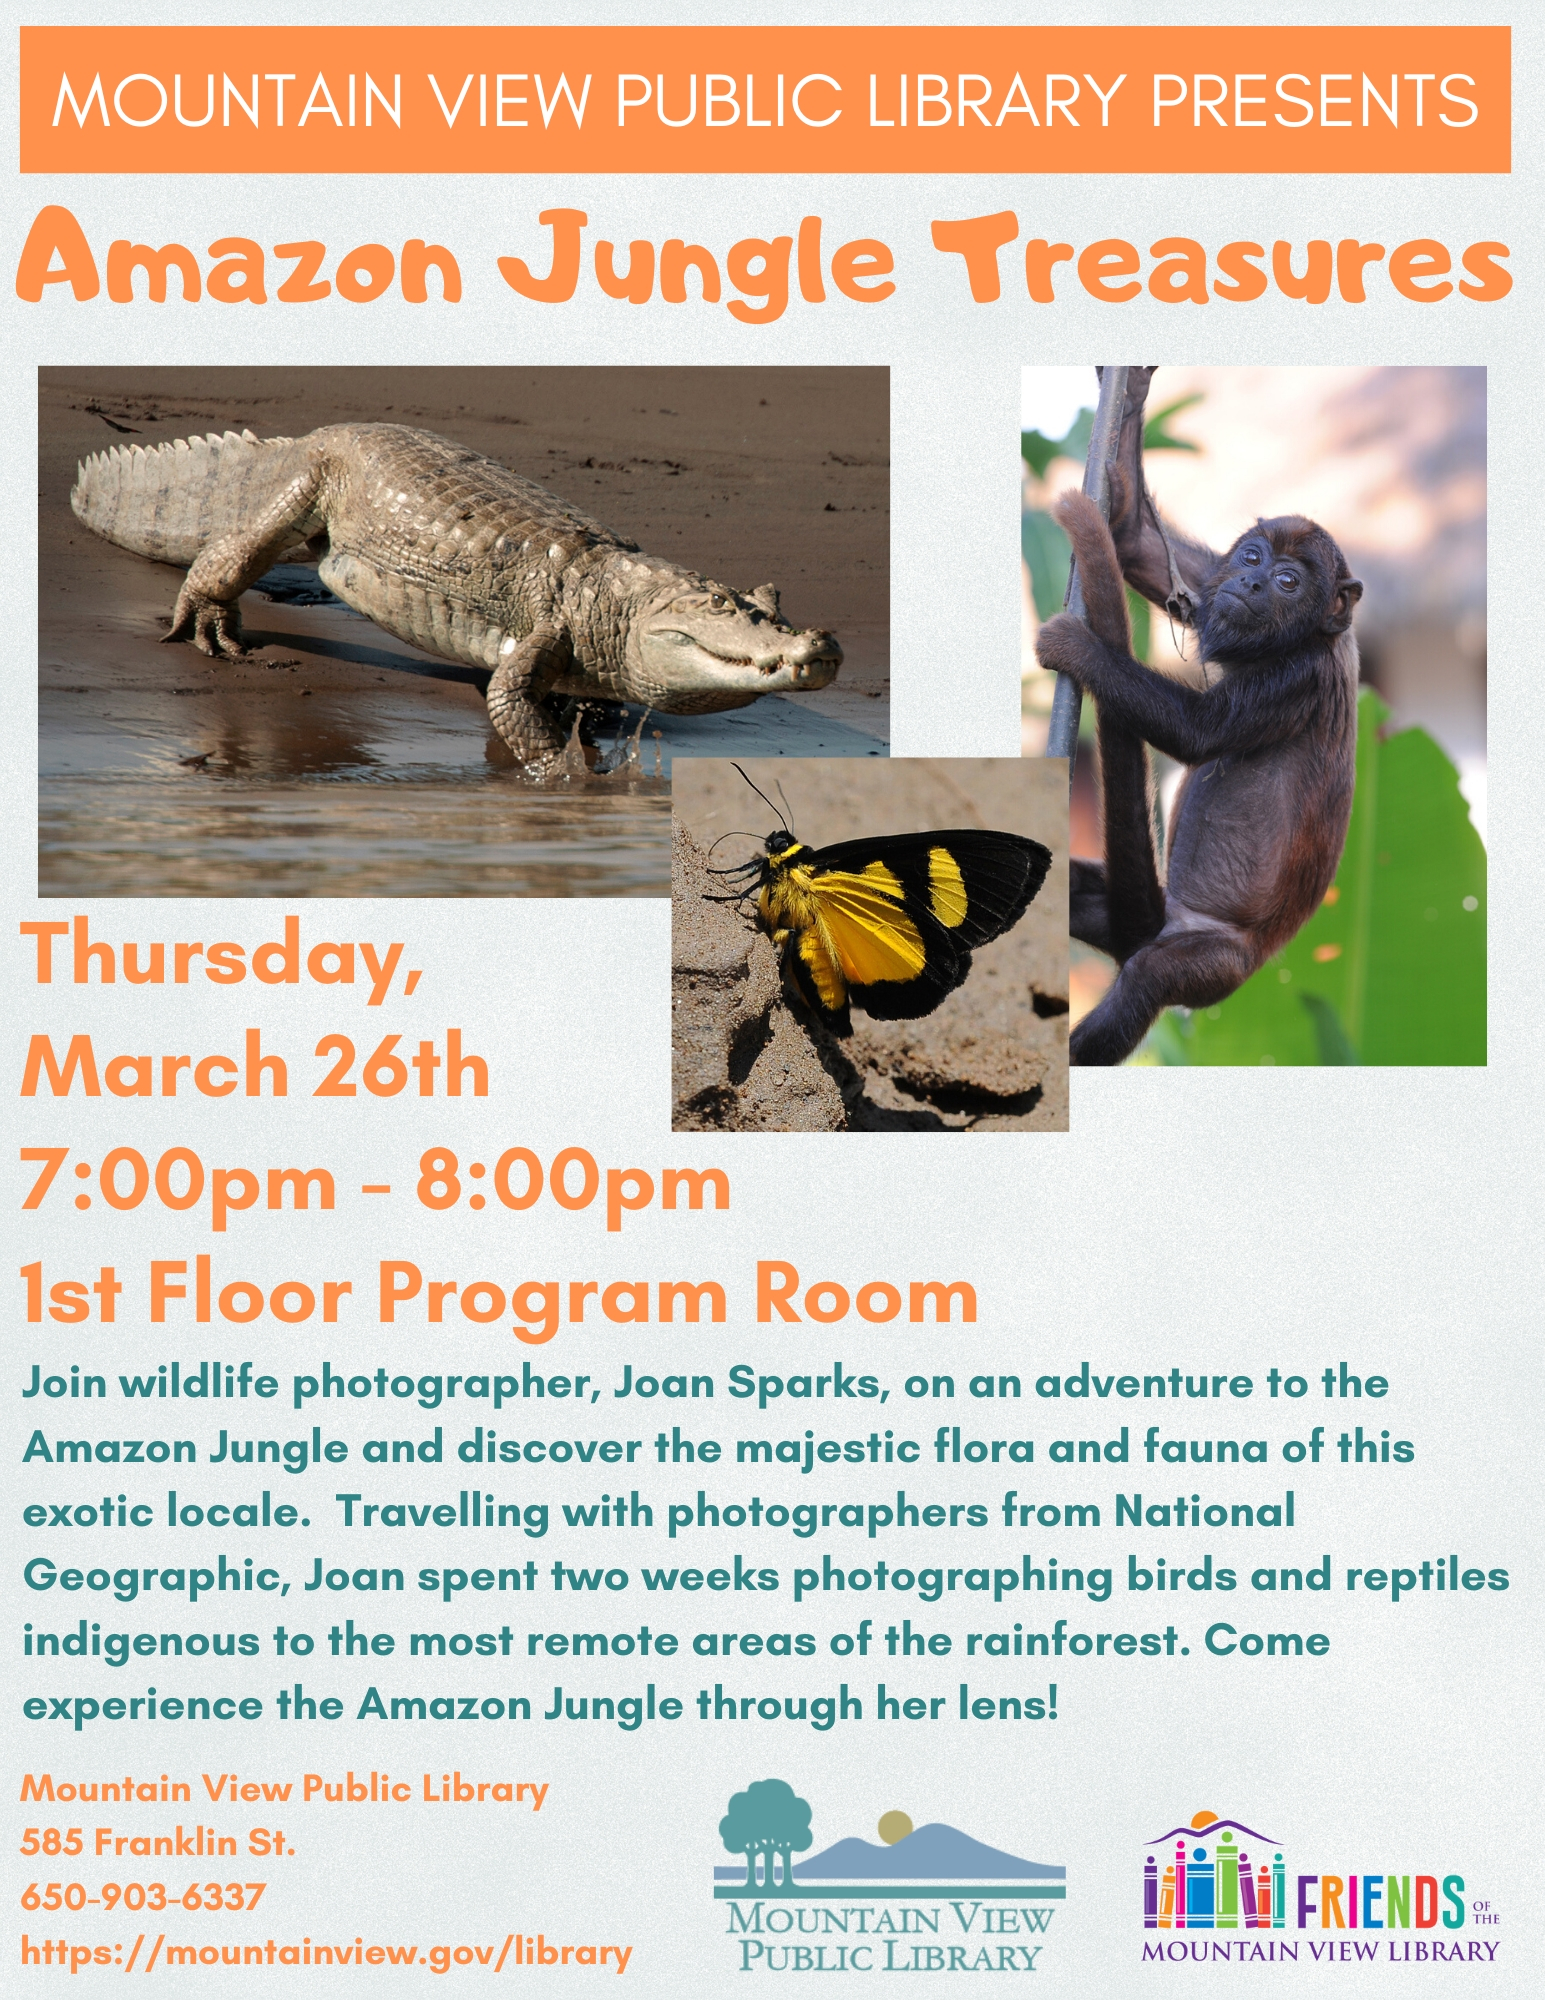 POSTPONED: Amazon Jungle Treasures